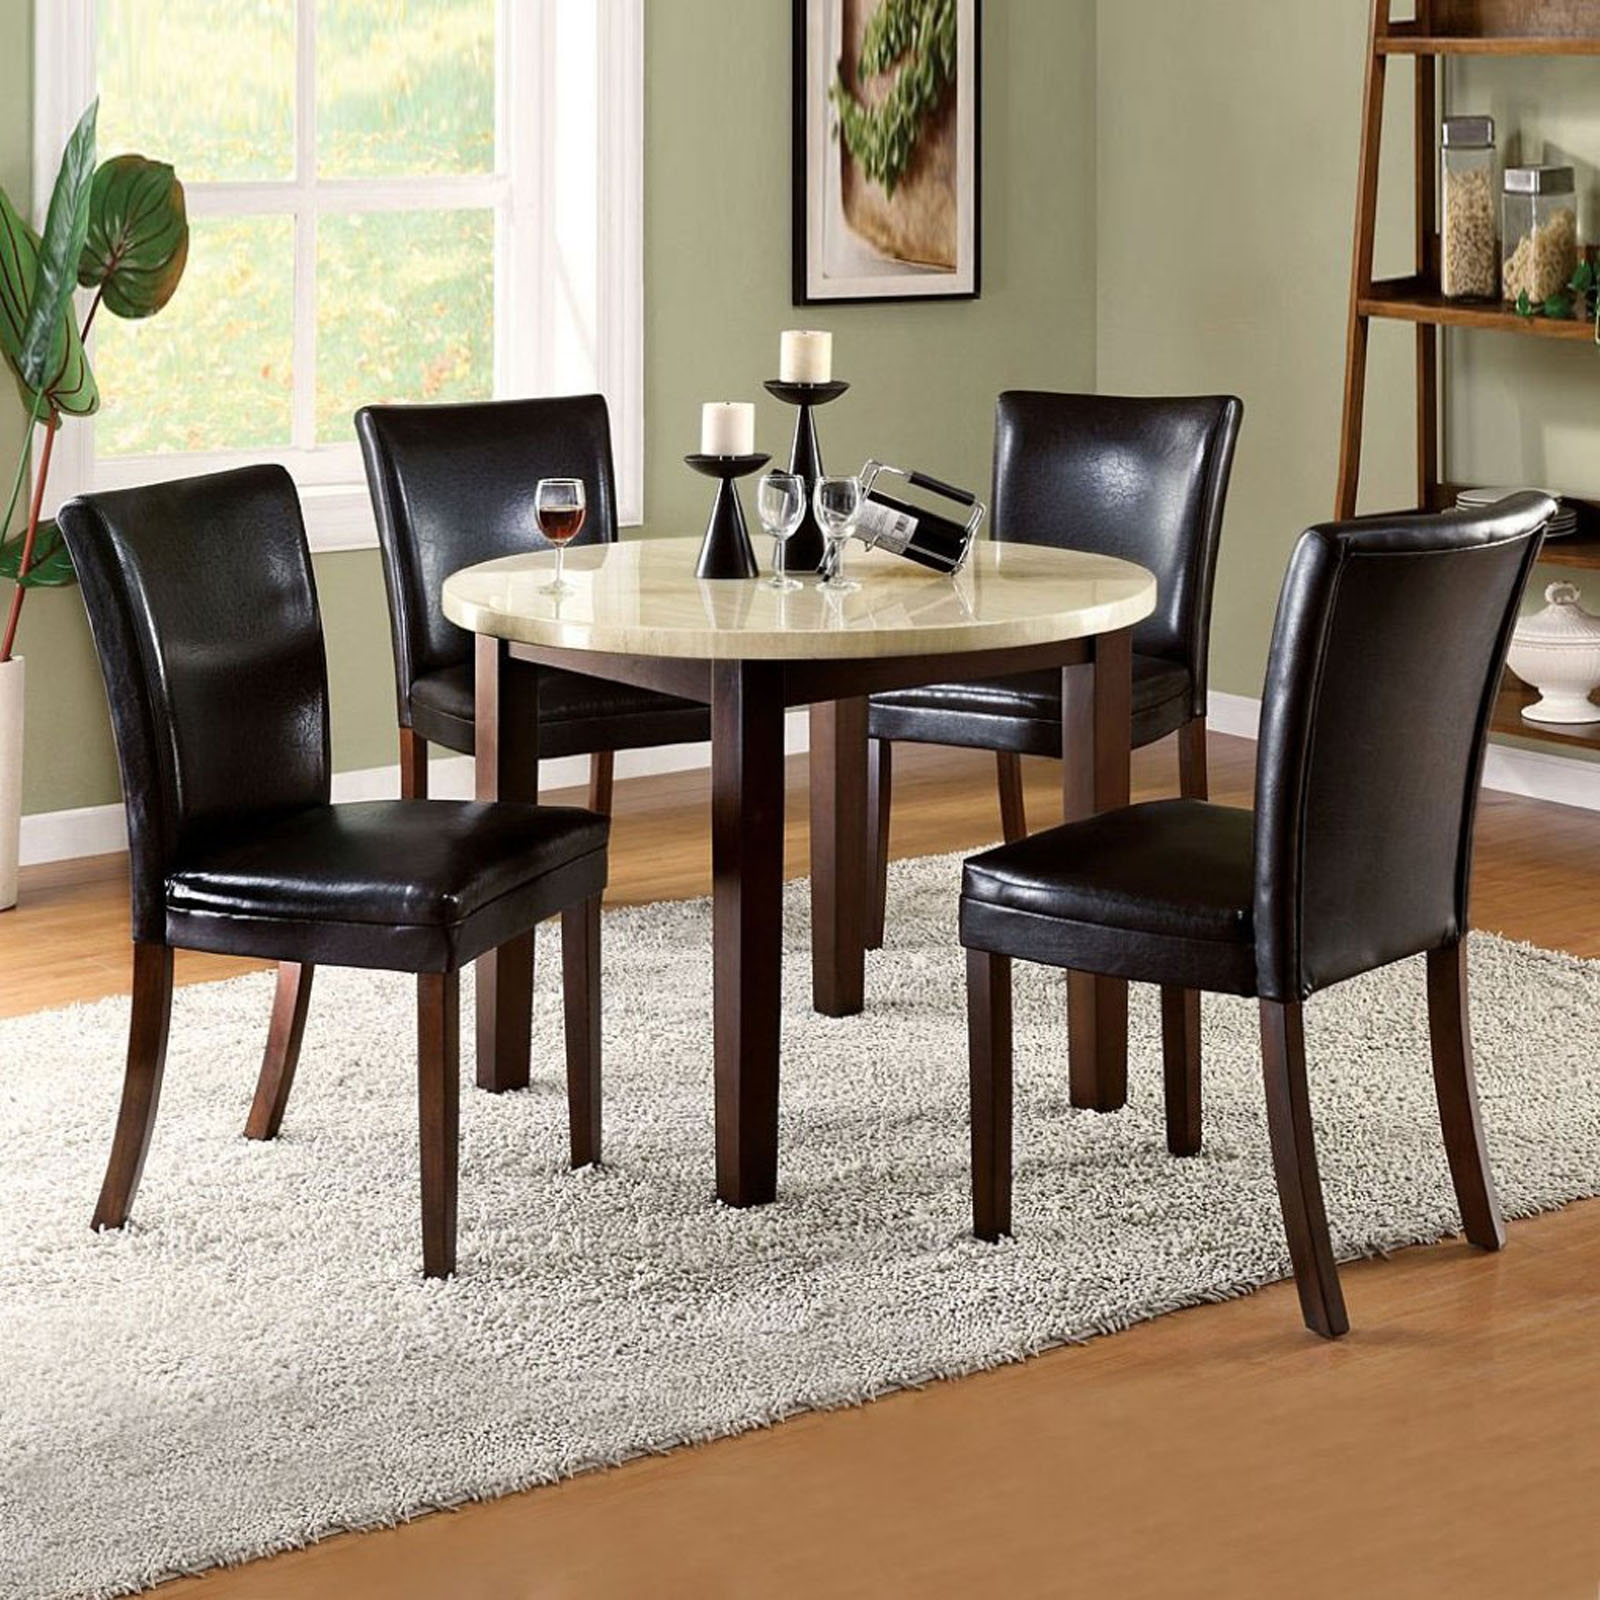 Decorating Ideas For Kitchen Table